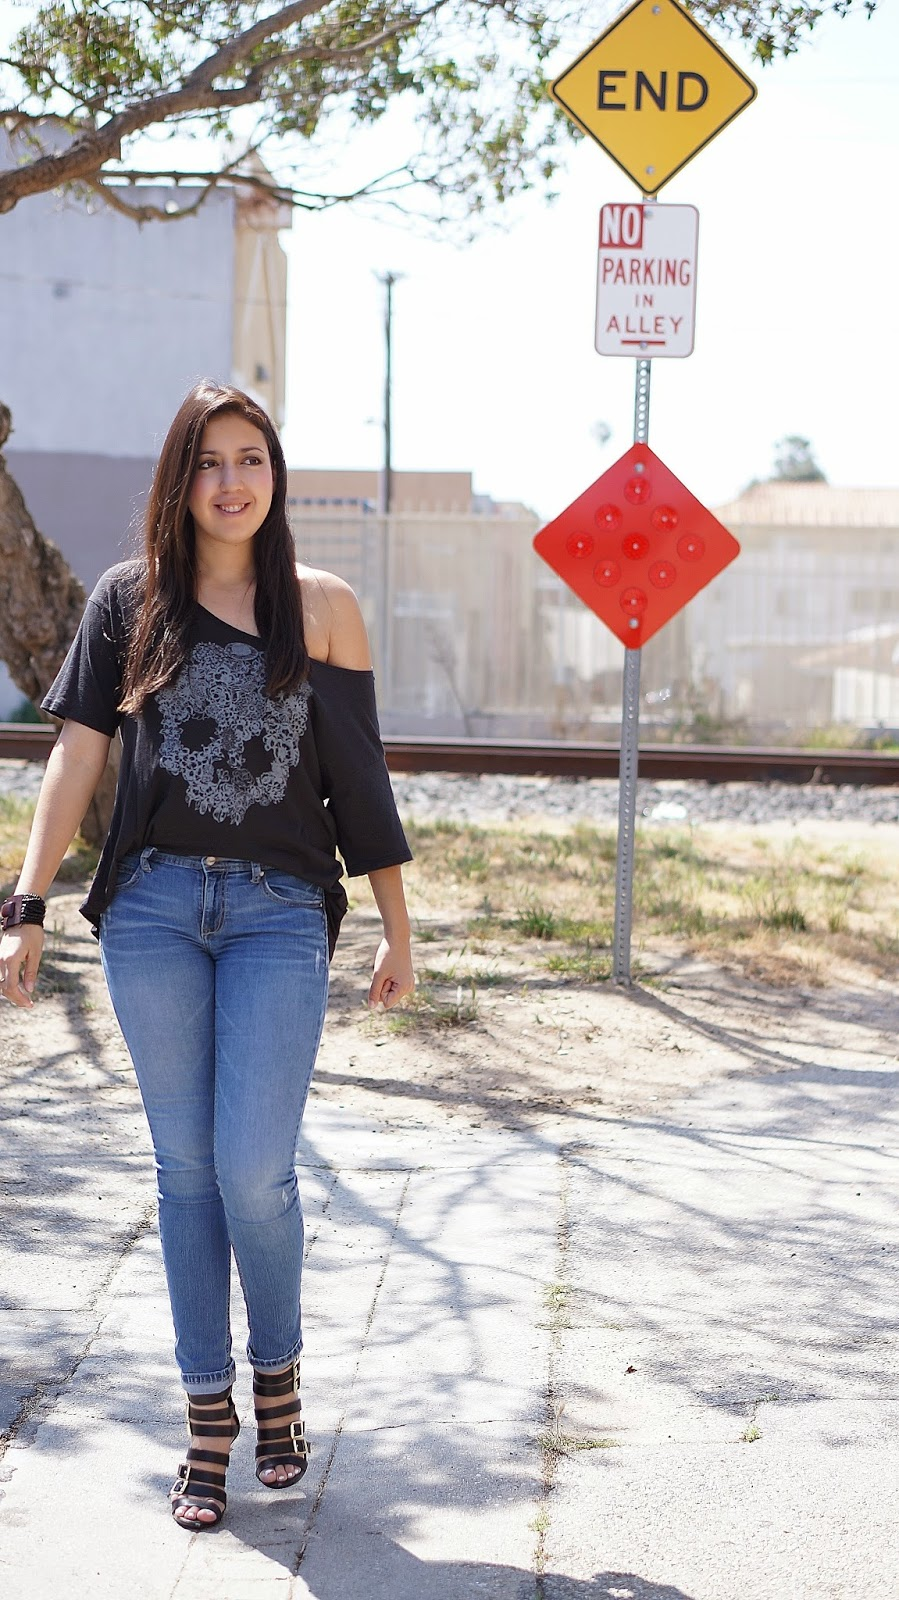 Fashion blogger, Latina Fashion blogger, casual outfit, Mossimo Saphire Strappy heels, Target heels, Off the shoulder top, skull shirt, free spirit, railroad tracks